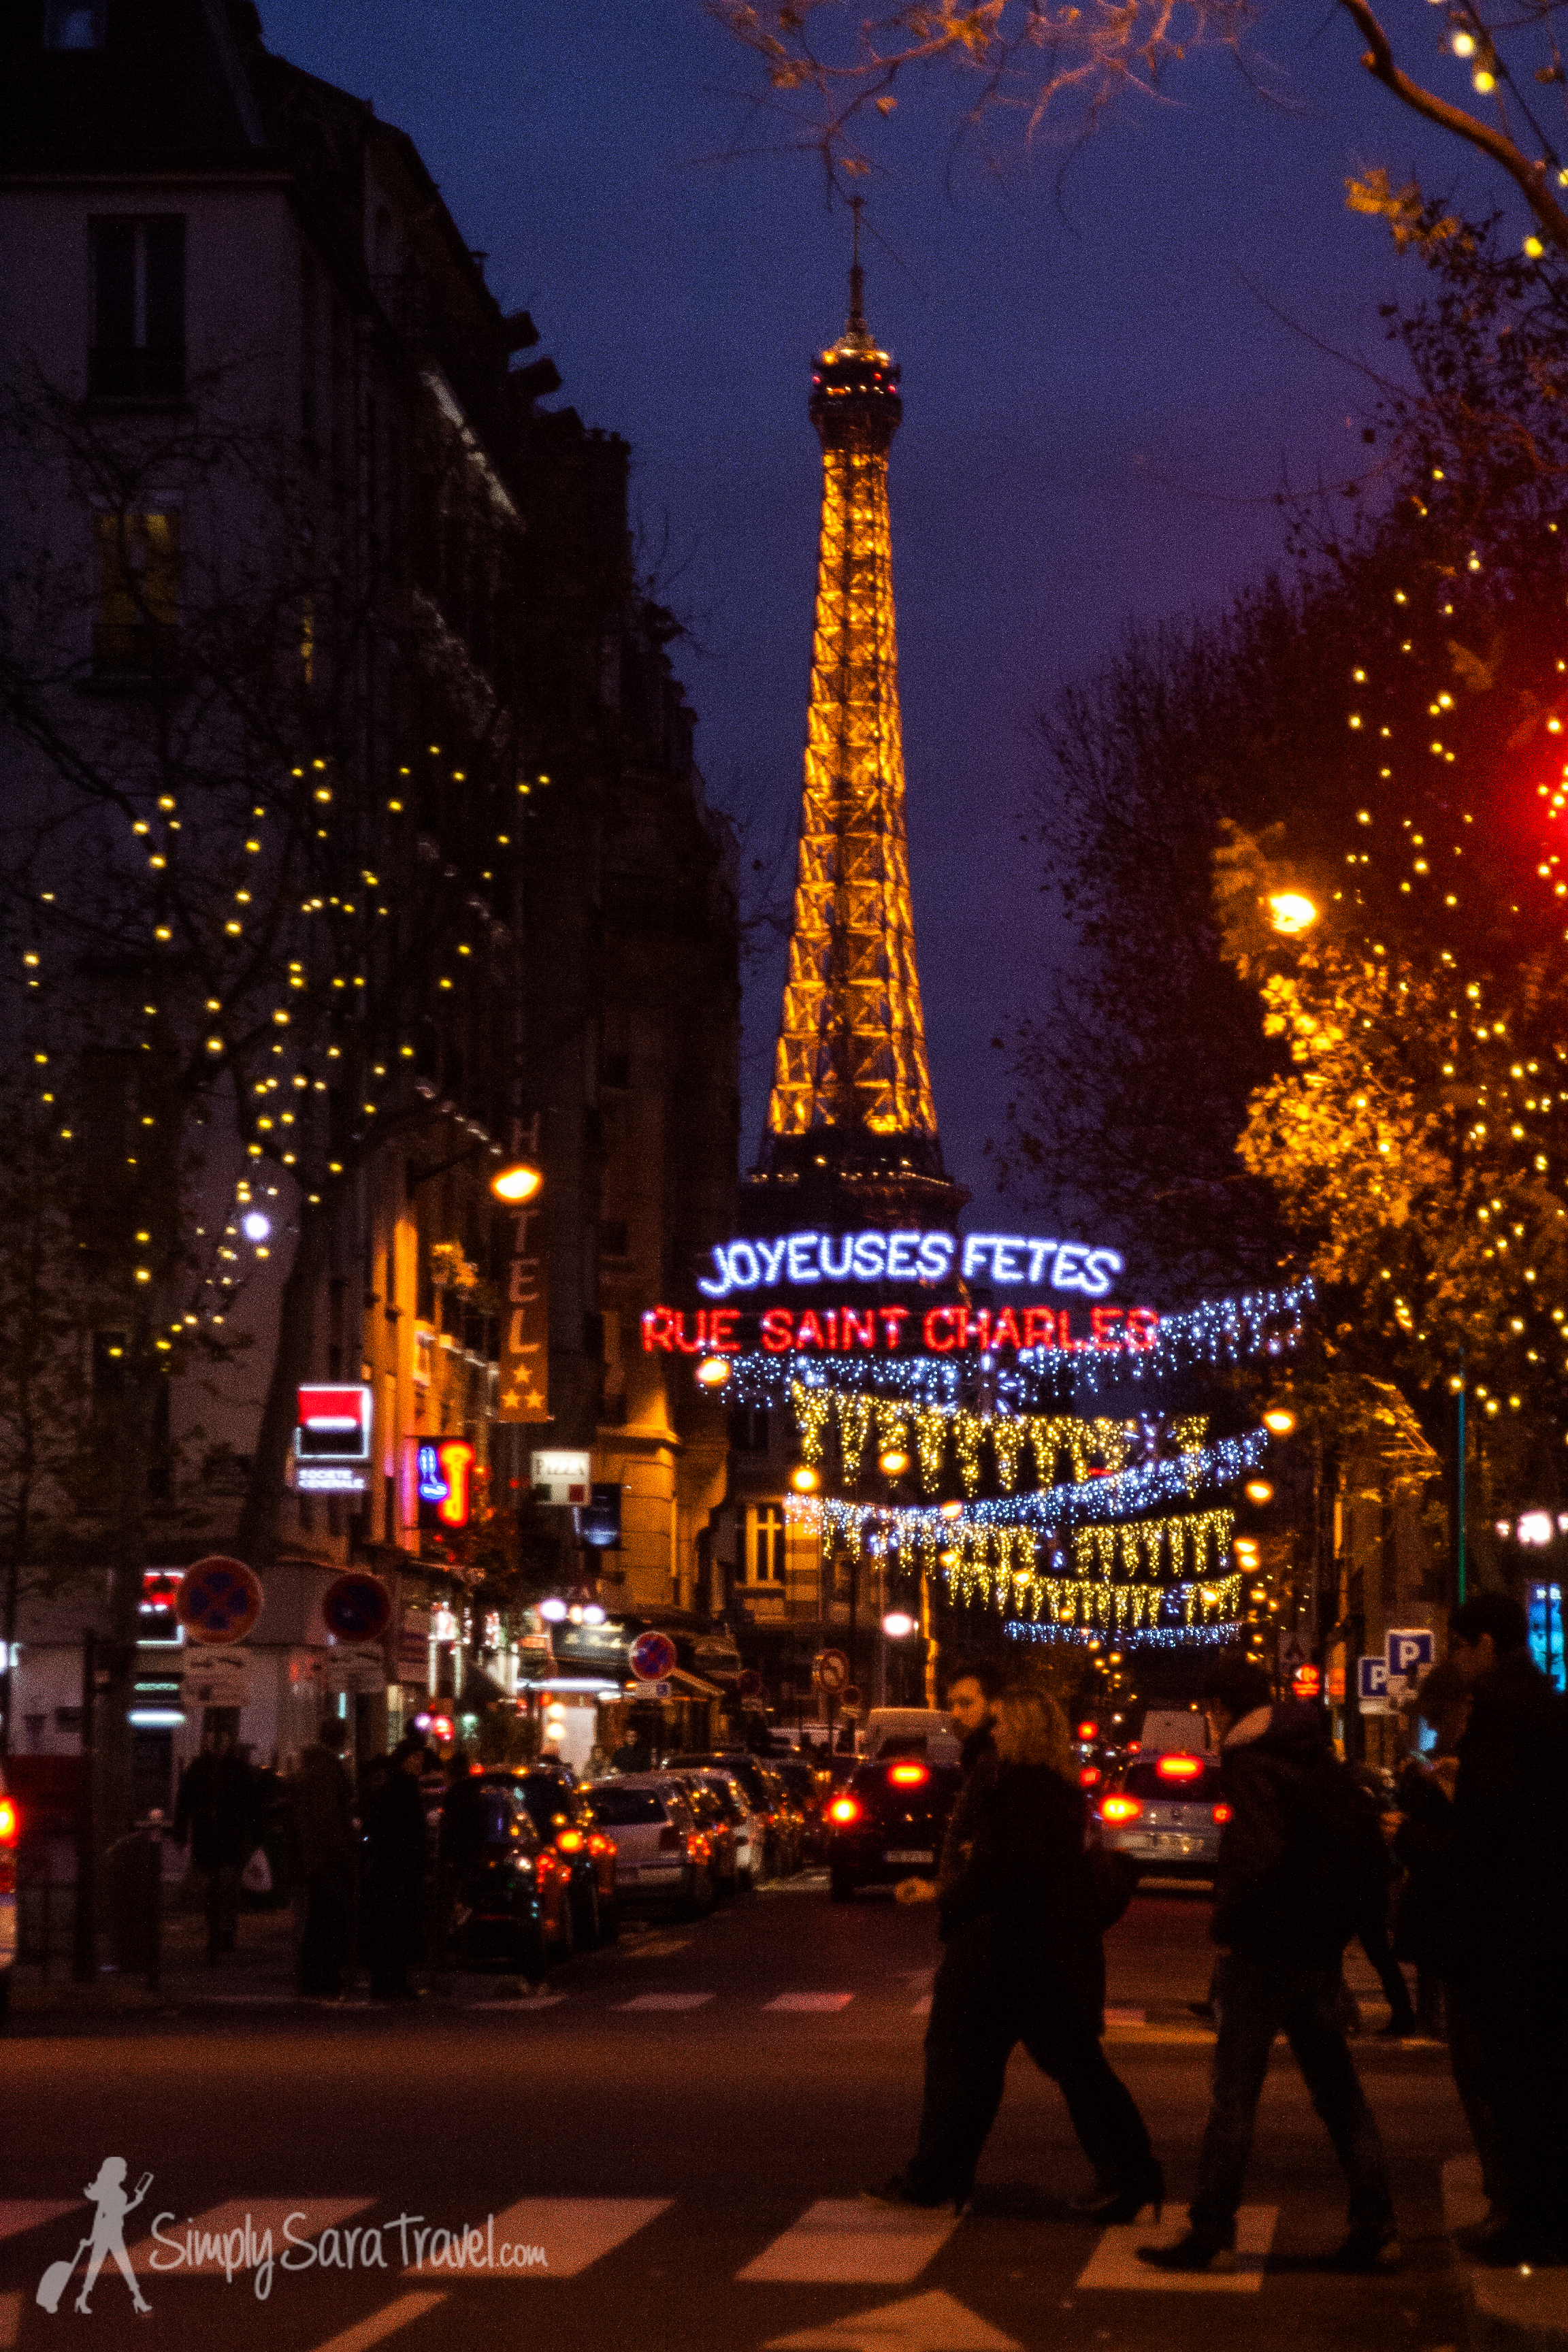 Over 125 streets and squares are lit throughout Paris and are delightful to discover while strolling at night.